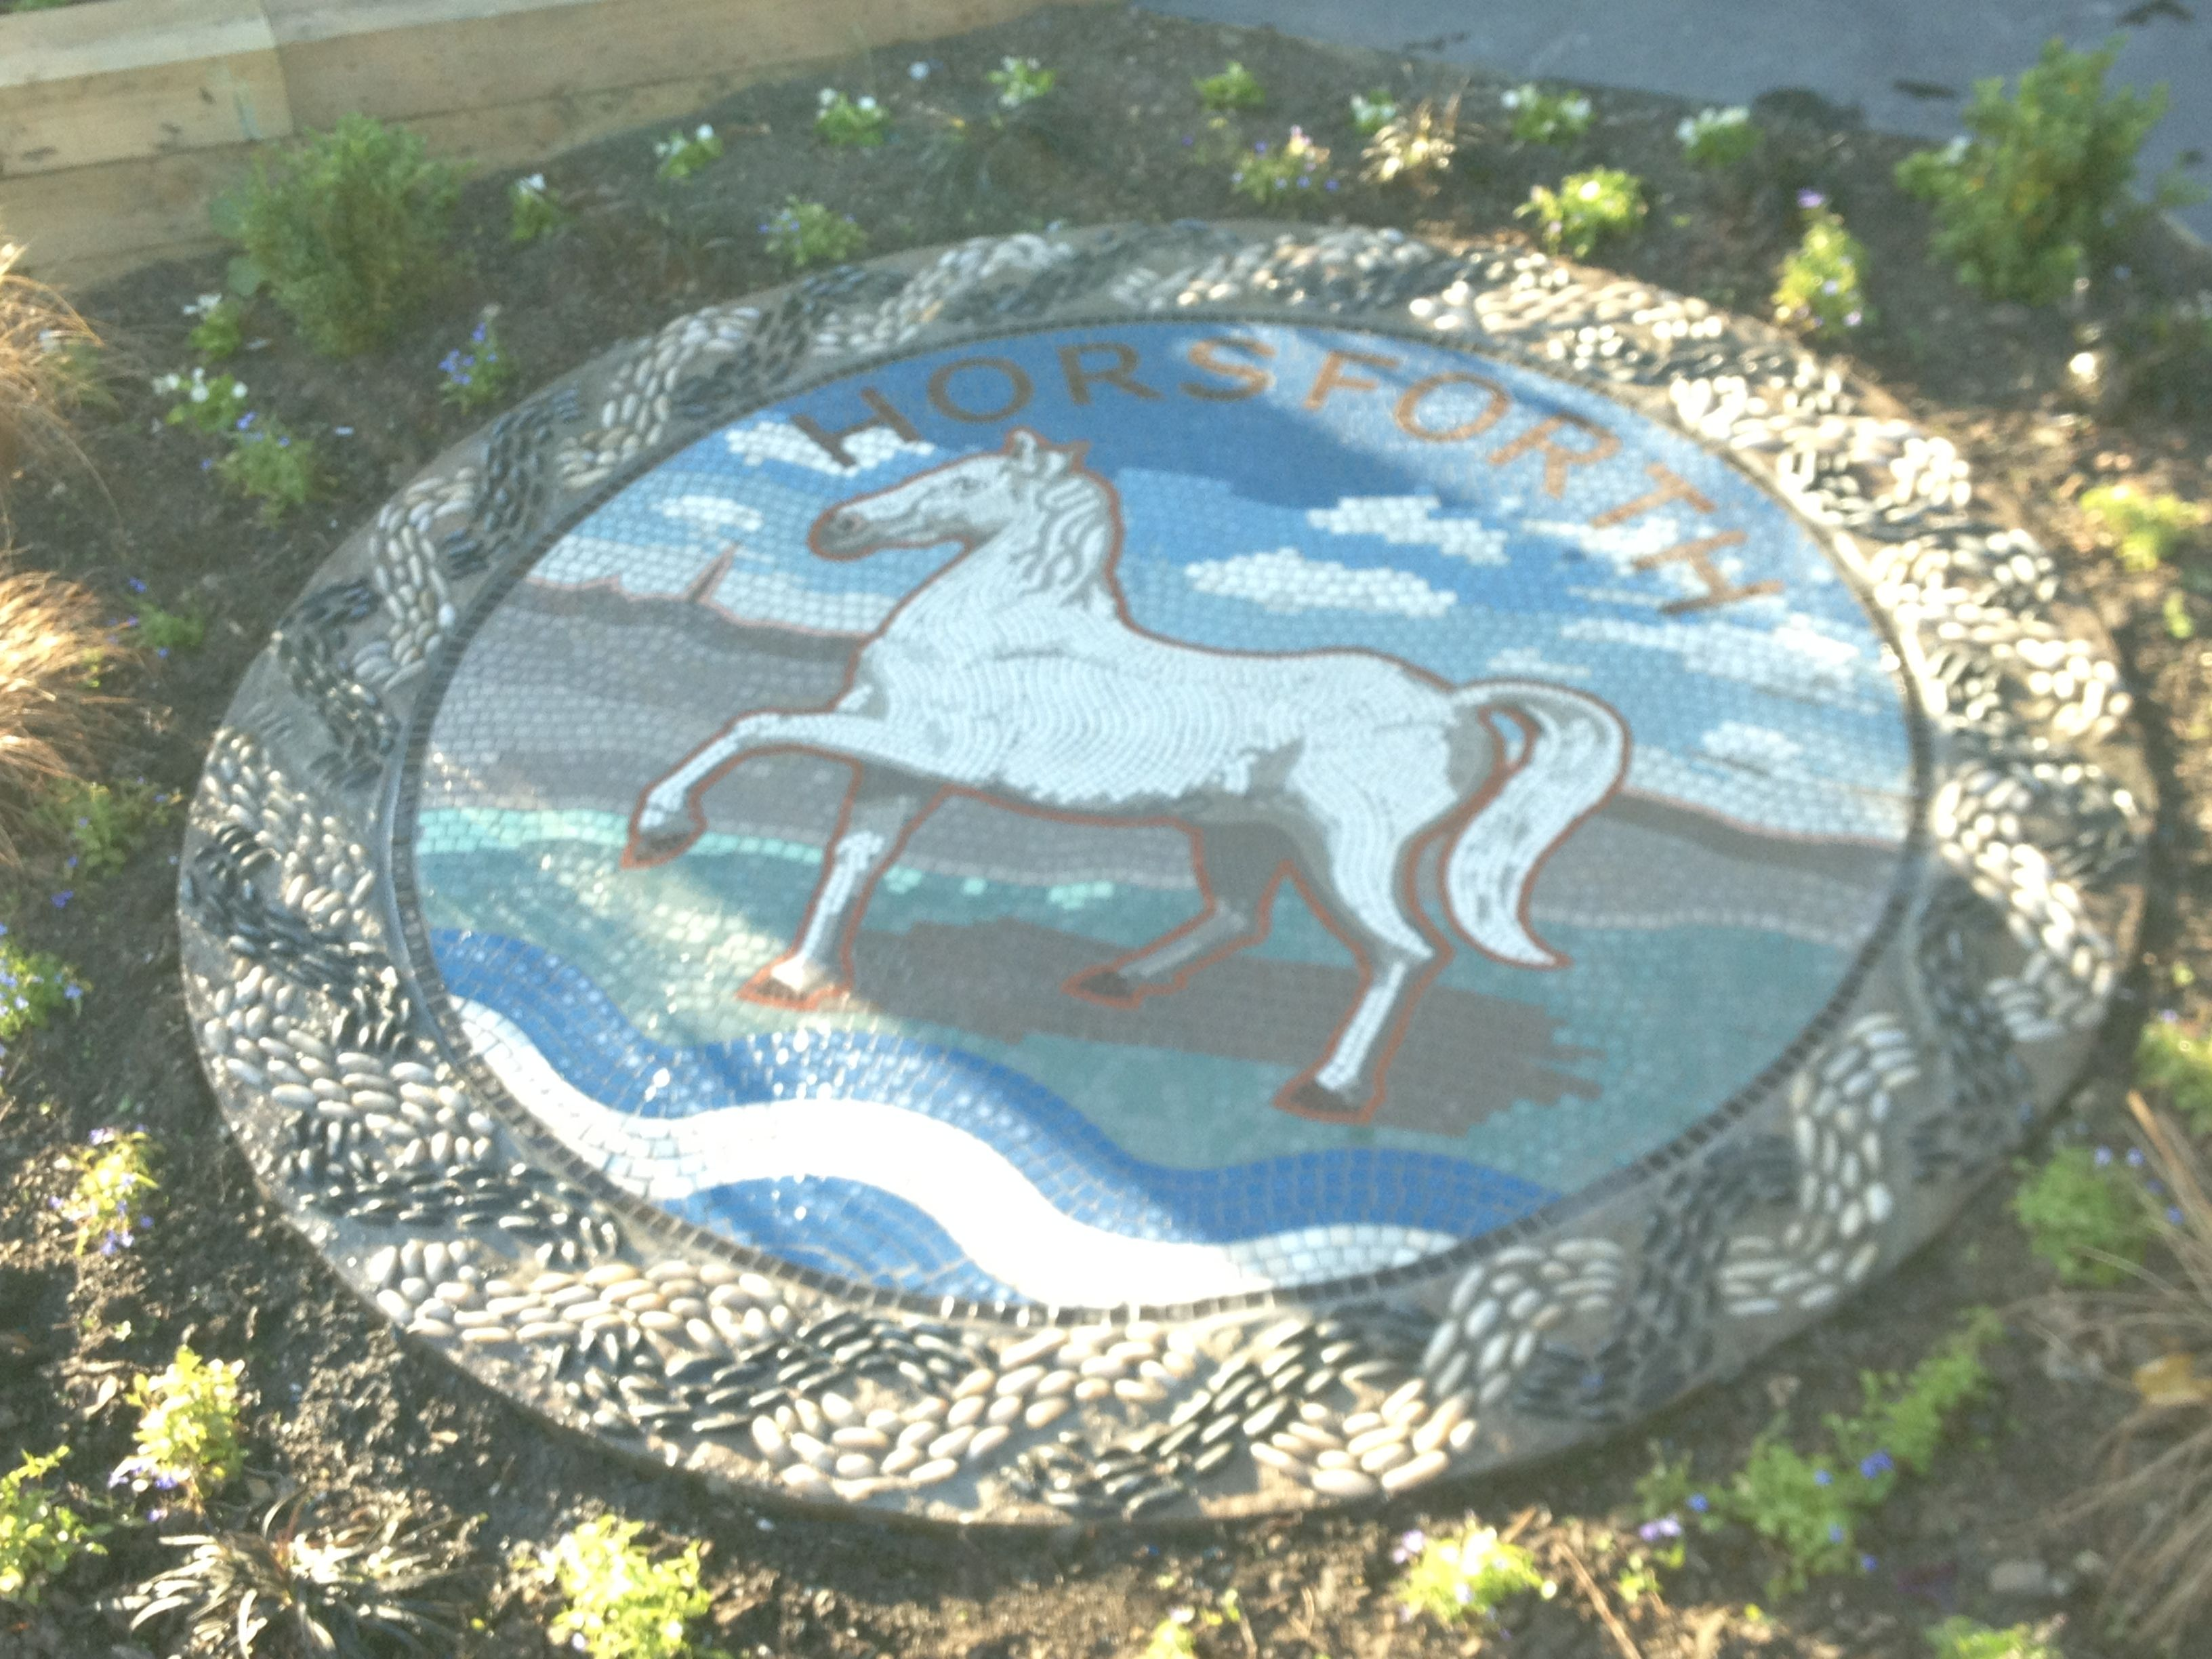 Horsforth public mosaic horse in handcut ceramic tiles and horsforth public mosaic horse in handcut ceramic tiles and guilloche in pebble dailygadgetfo Image collections